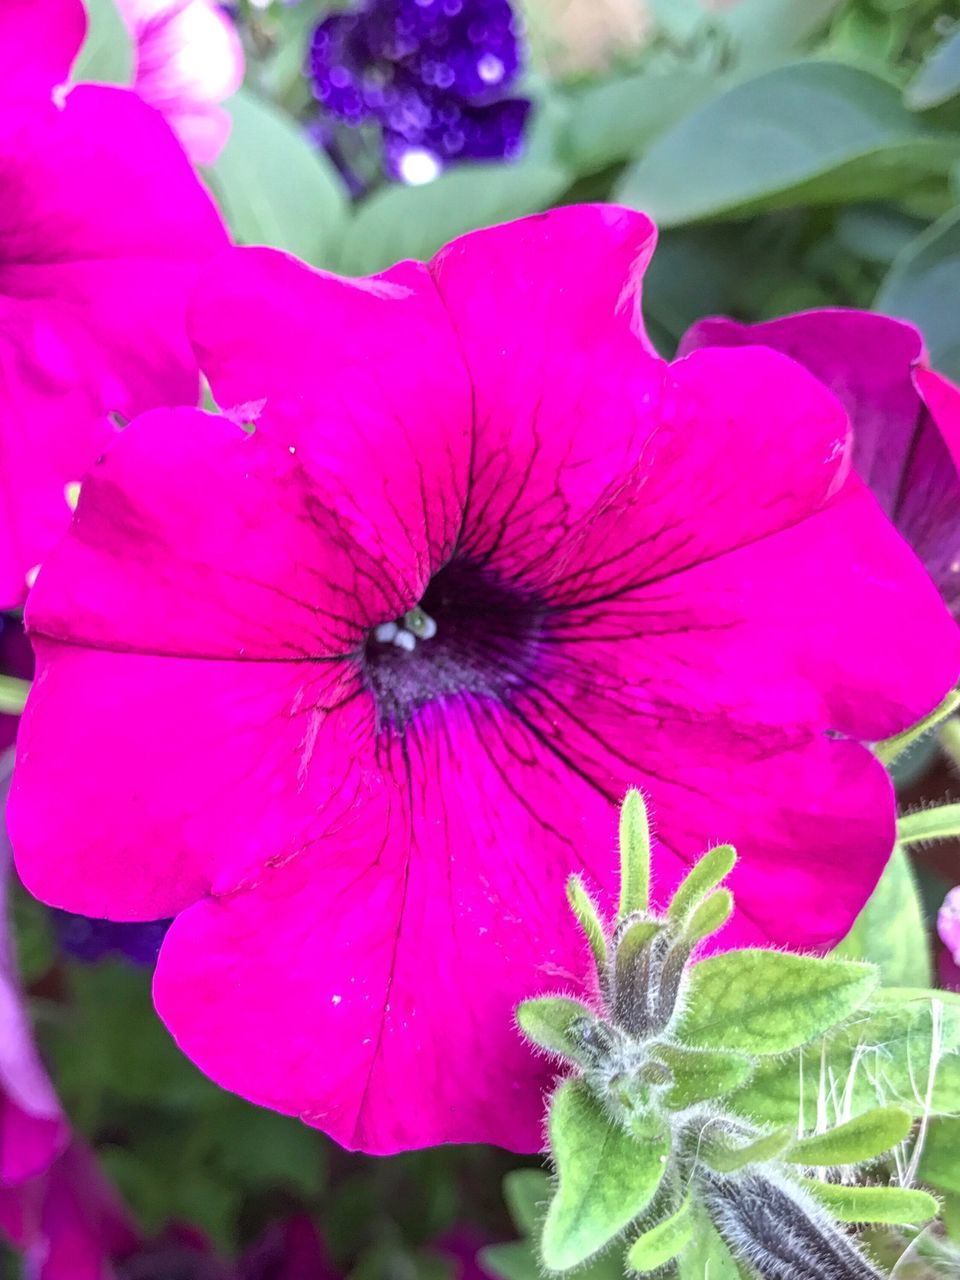 Flower Petal Fragility Beauty In Nature Flower Head Growth Nature Pink Color Plant Freshness Blooming Day Outdoors No People Close-up Animal Themes Petunia